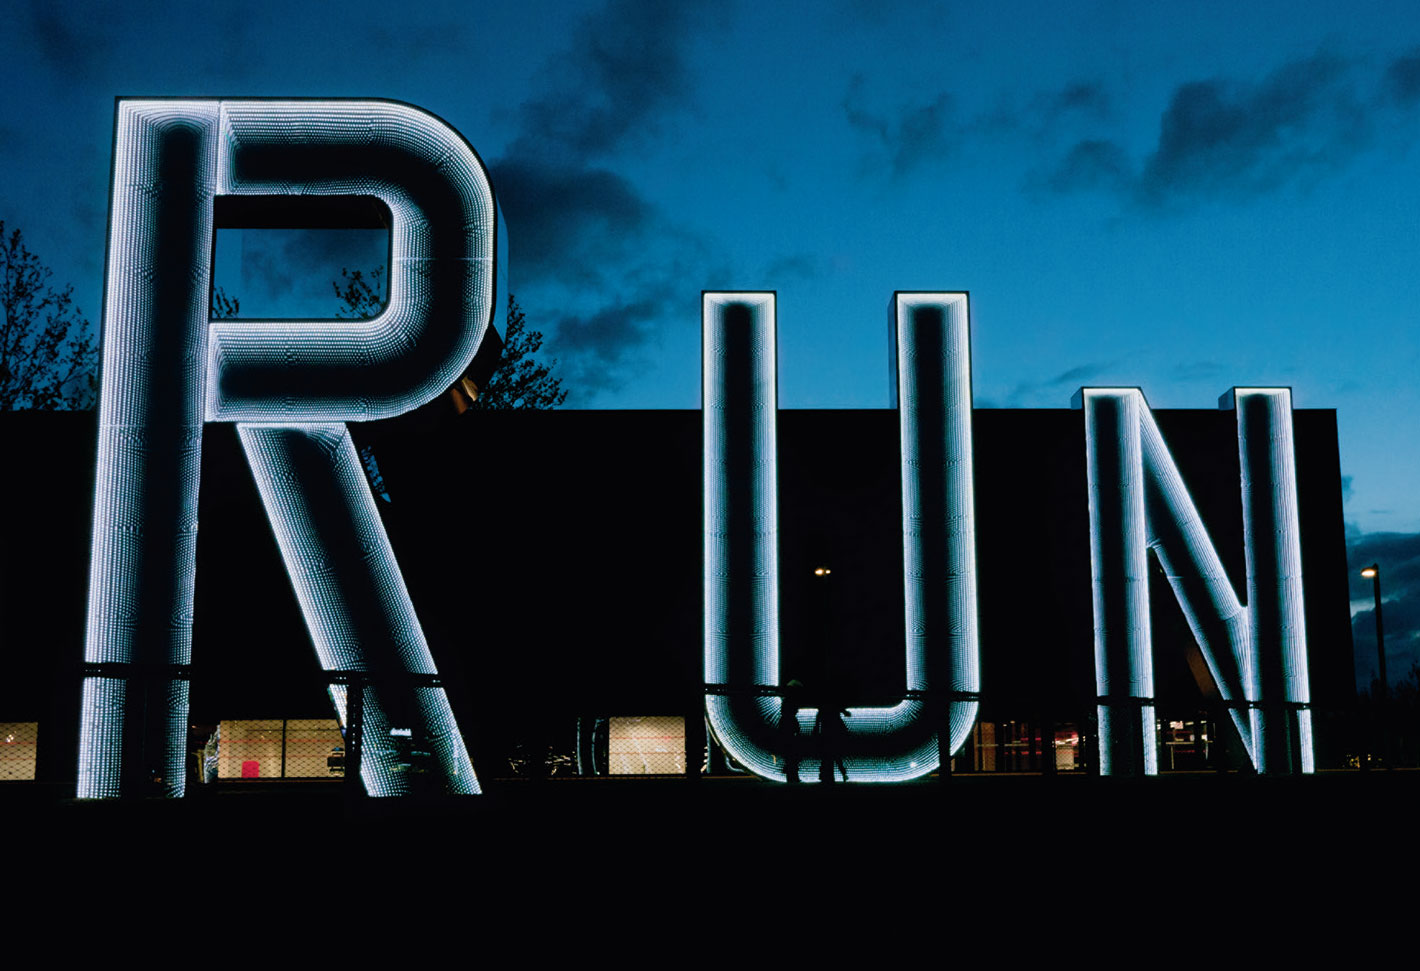 Run (night view) (2012) by Monica Bonvicini